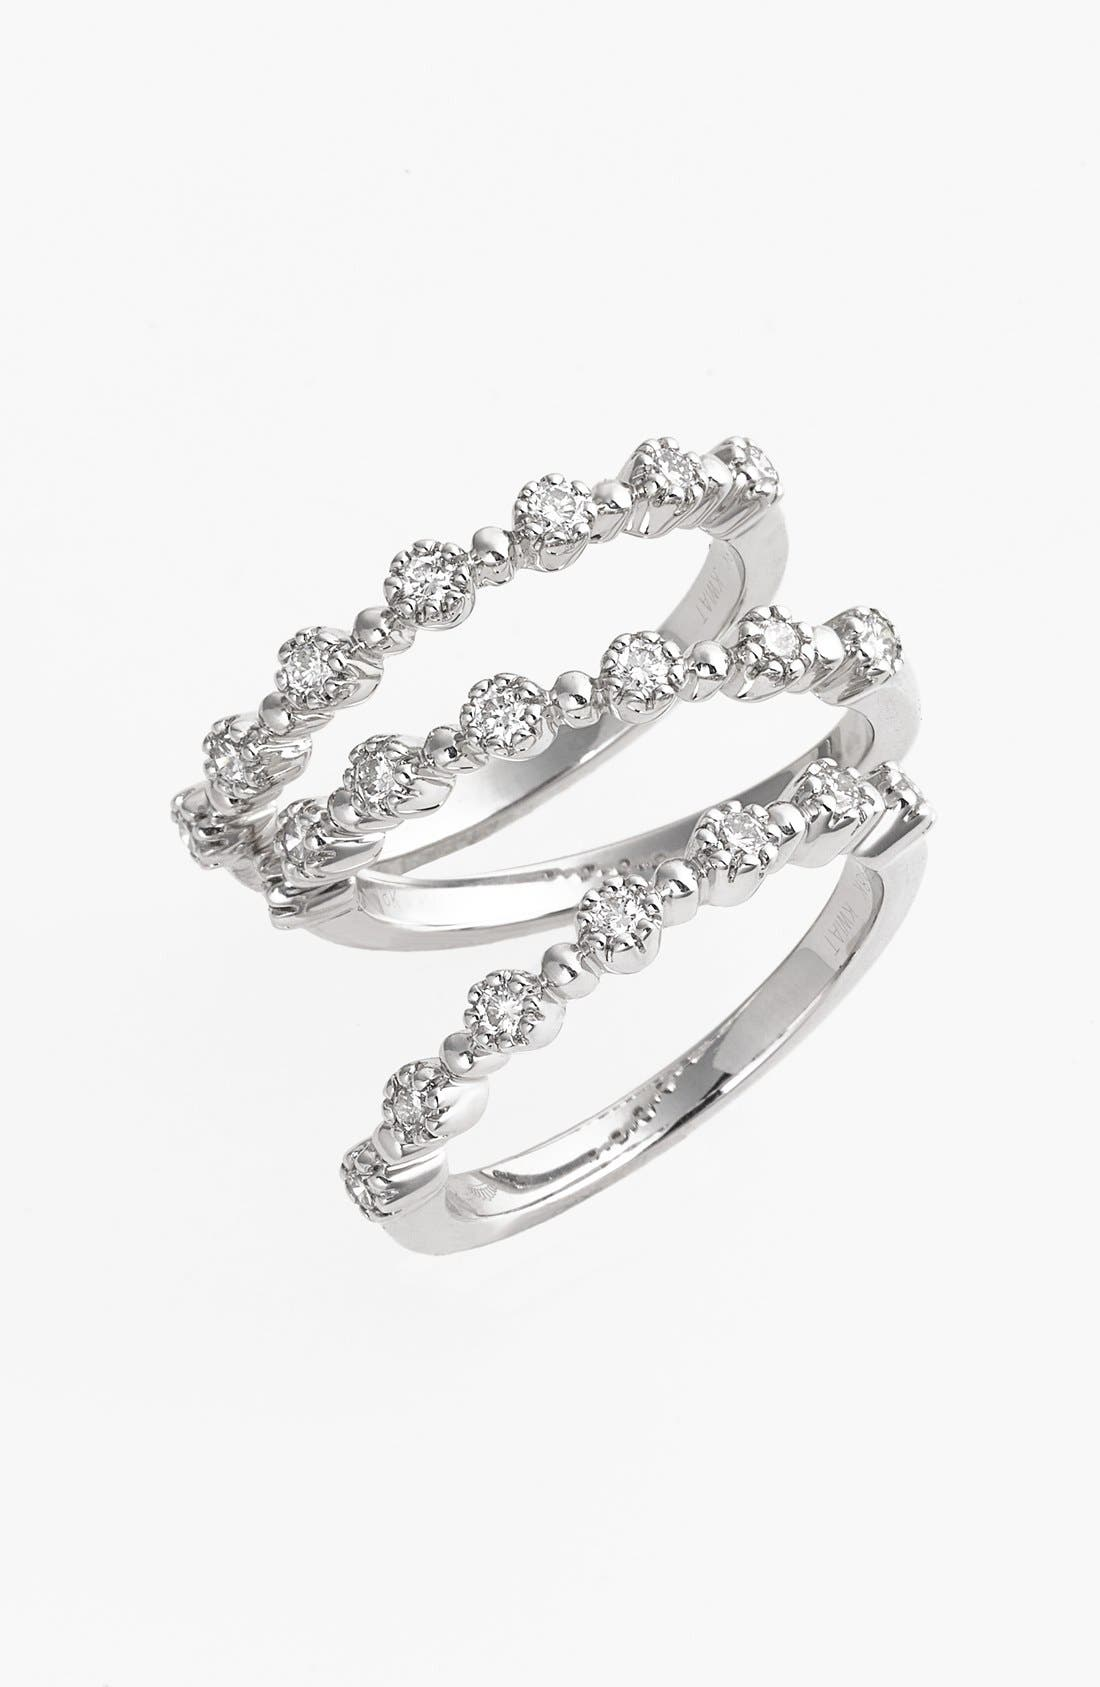 Main Image - Kwiat 'Stardust' Diamond Stackable Rings (Set of 3)